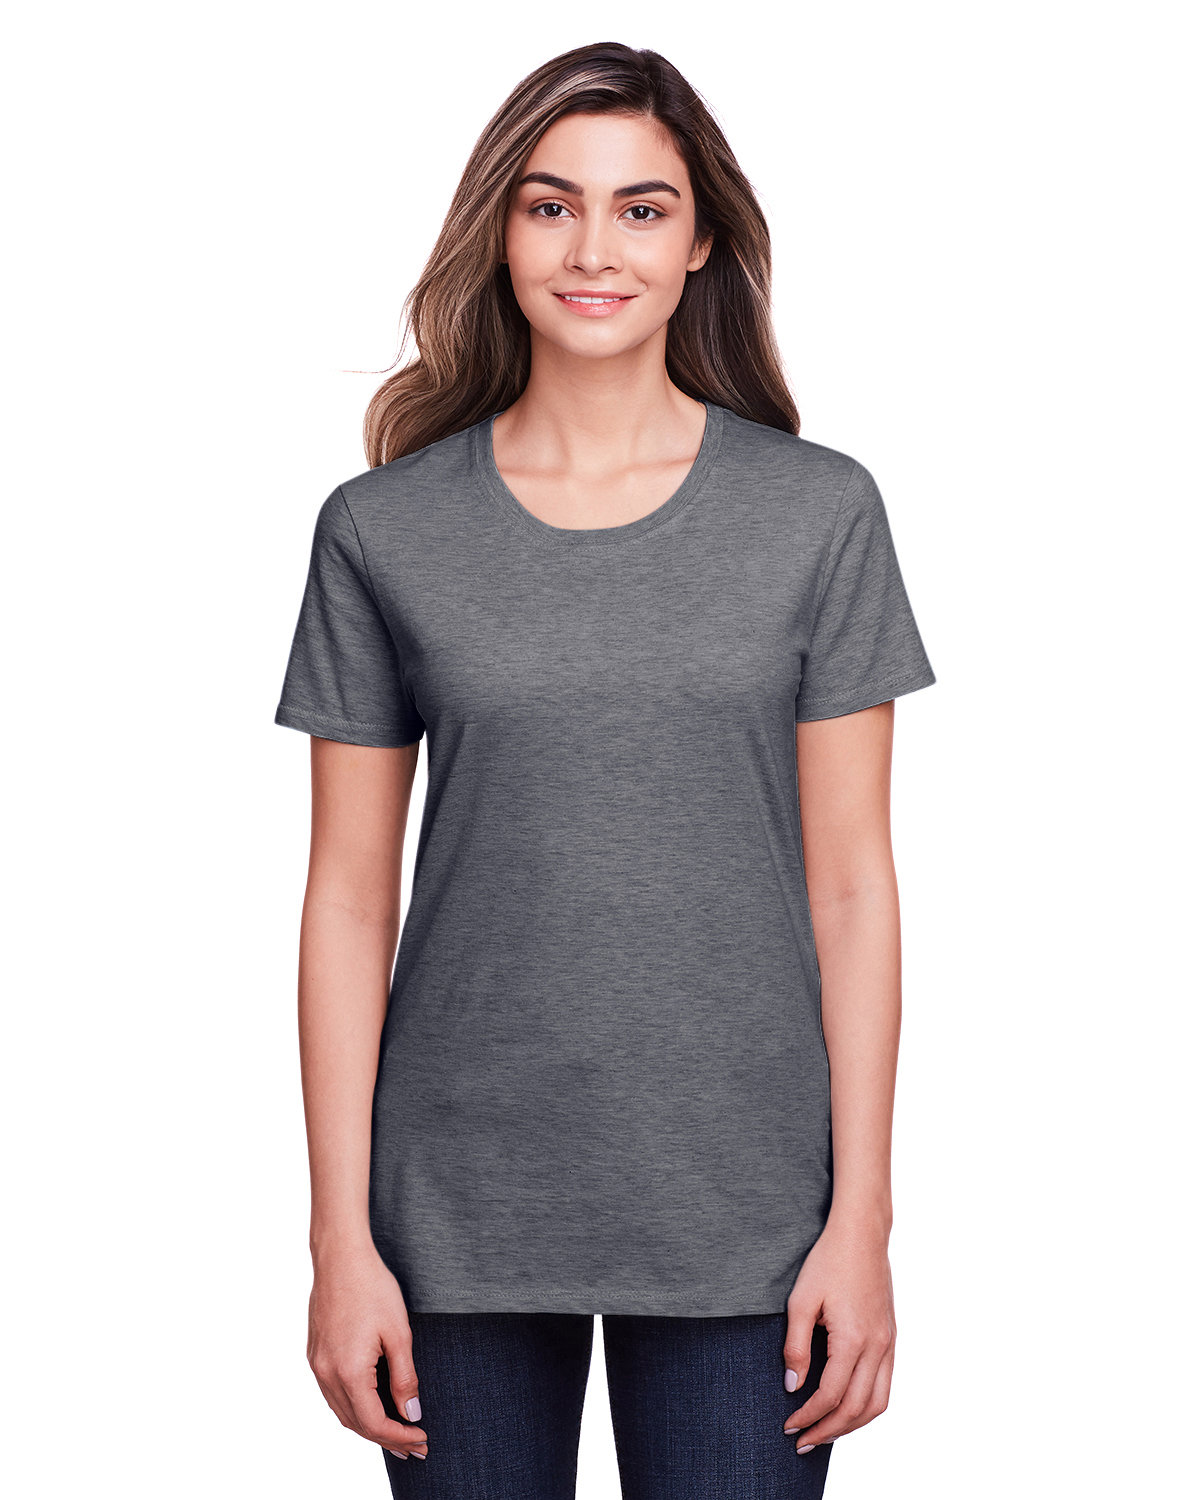 Fruit of the Loom Ladies' ICONIC™ T-Shirt CHARCOAL HEATHER